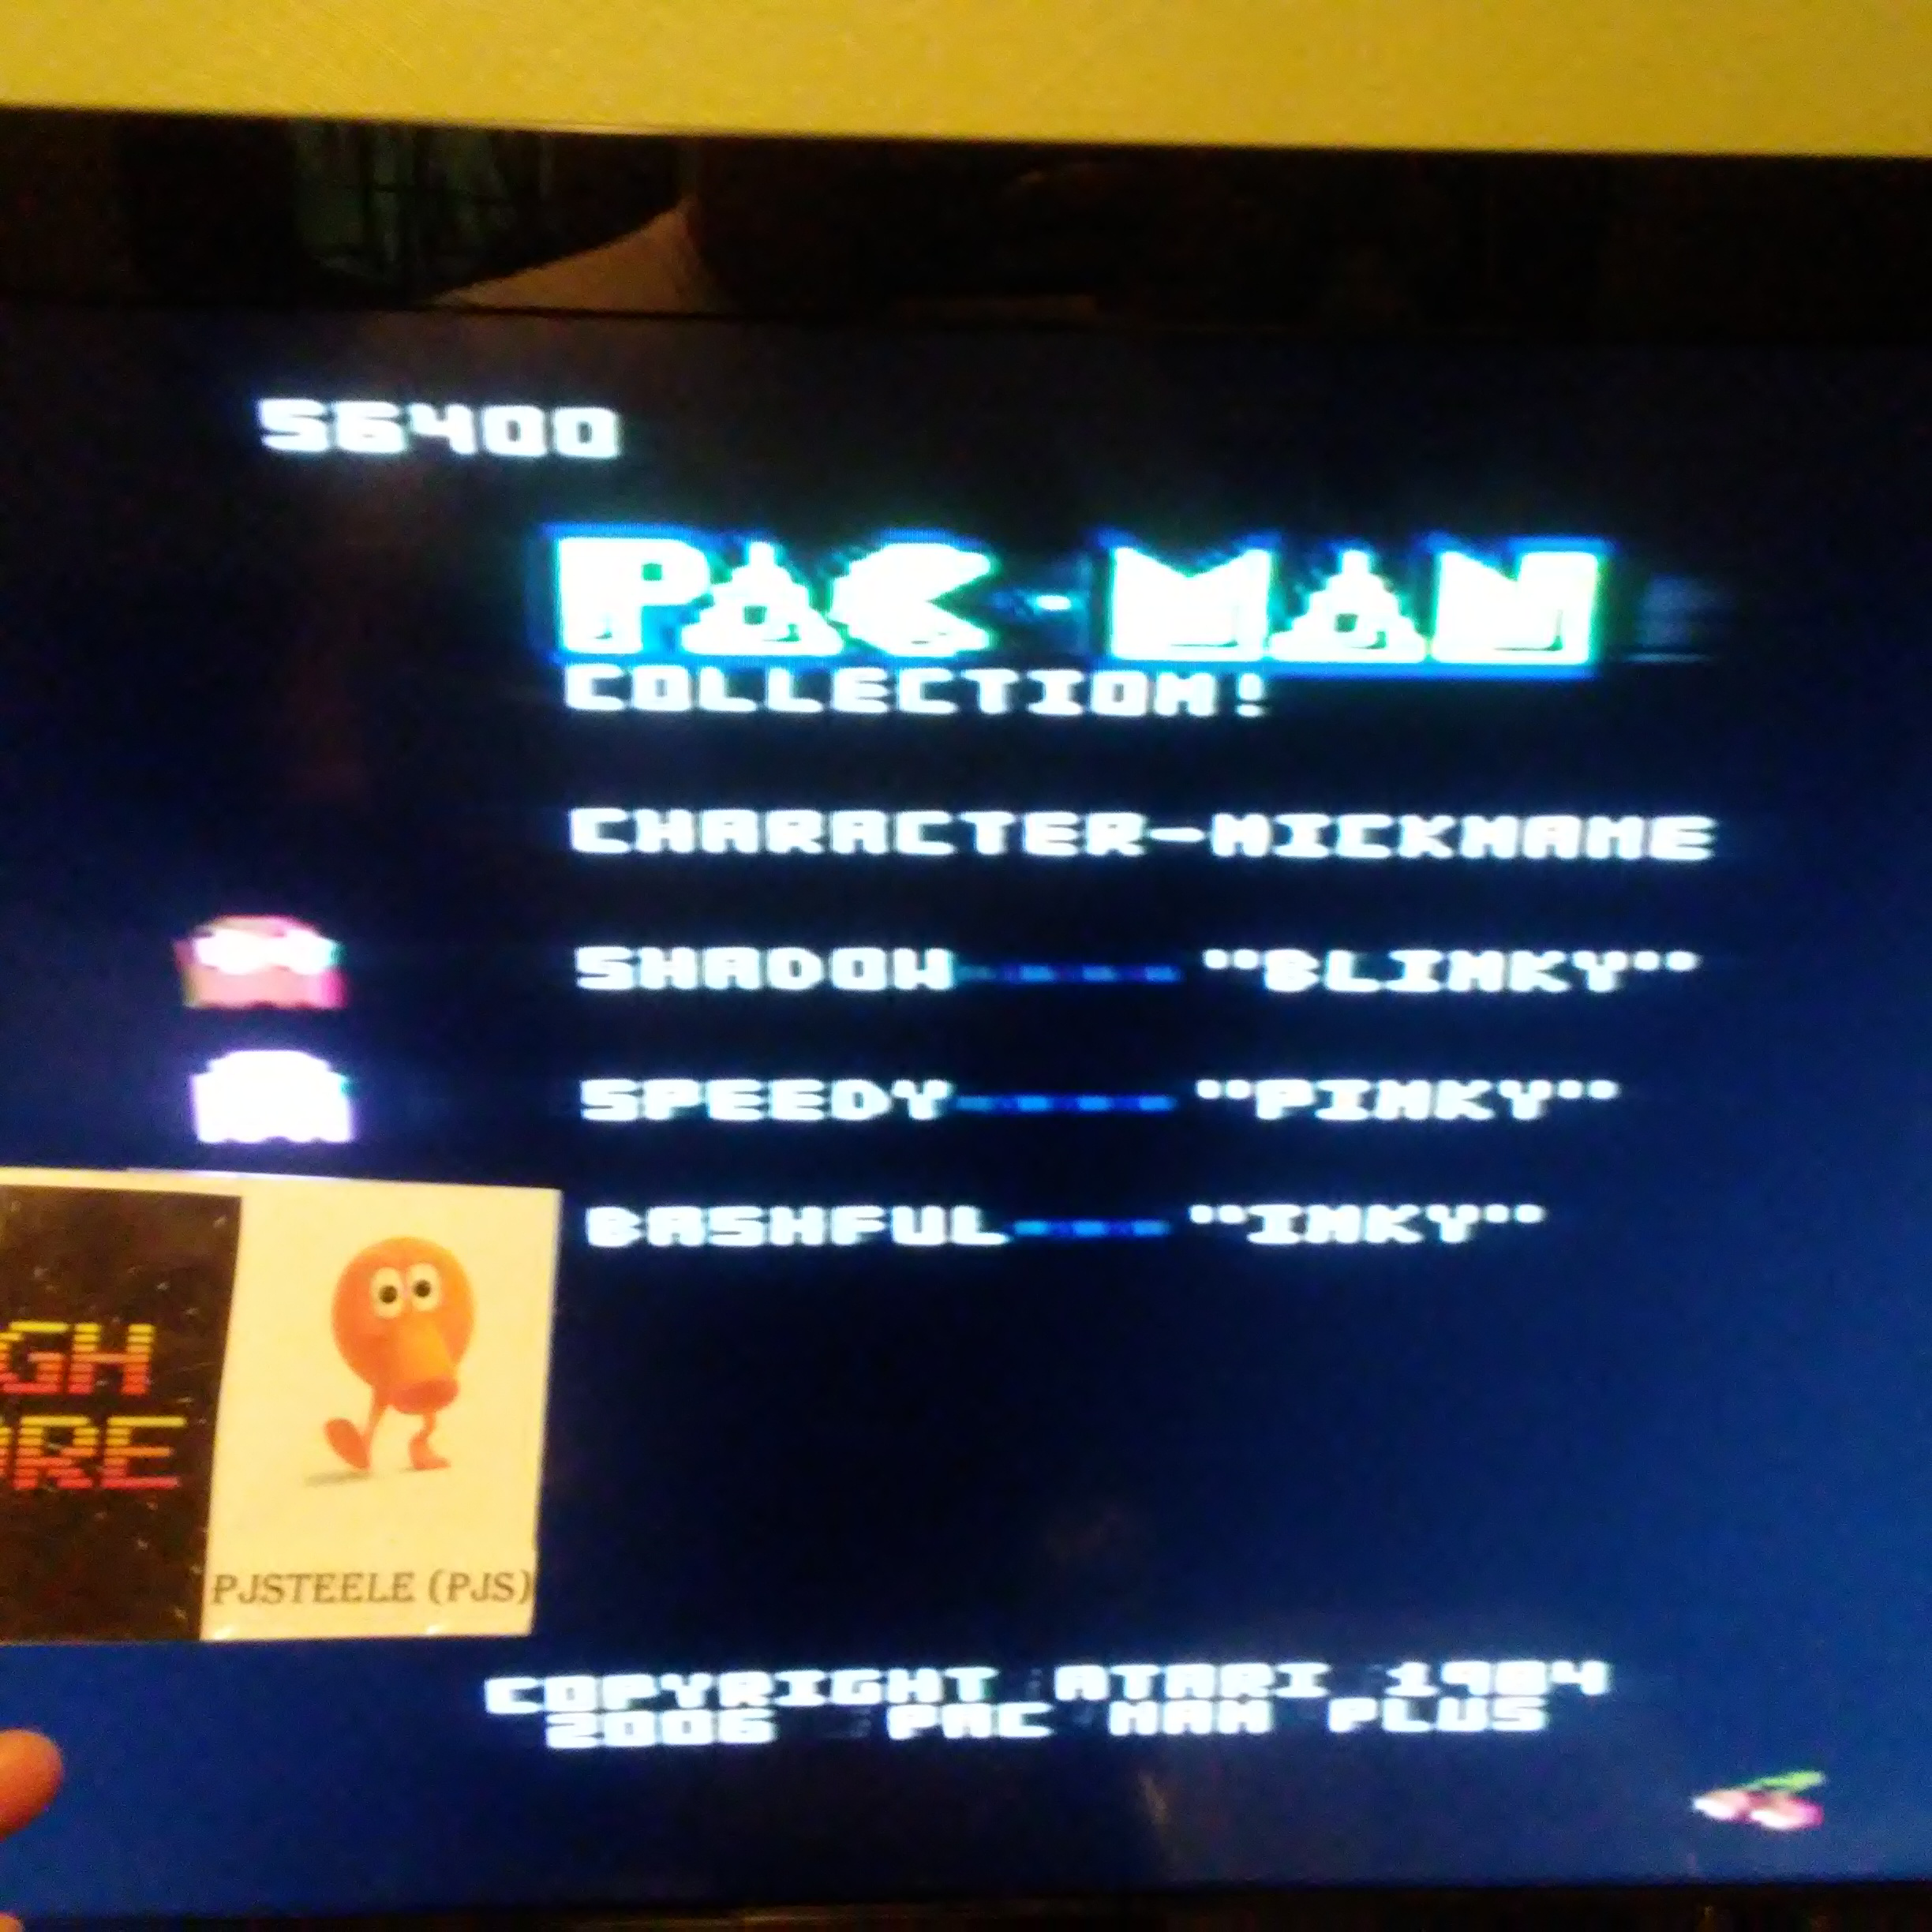 Pjsteele: Pac-Man Collection: Ultra Pac-Man [Cherries/Plus Off/Fast On] (Atari 7800) 56,400 points on 2018-07-06 17:52:28